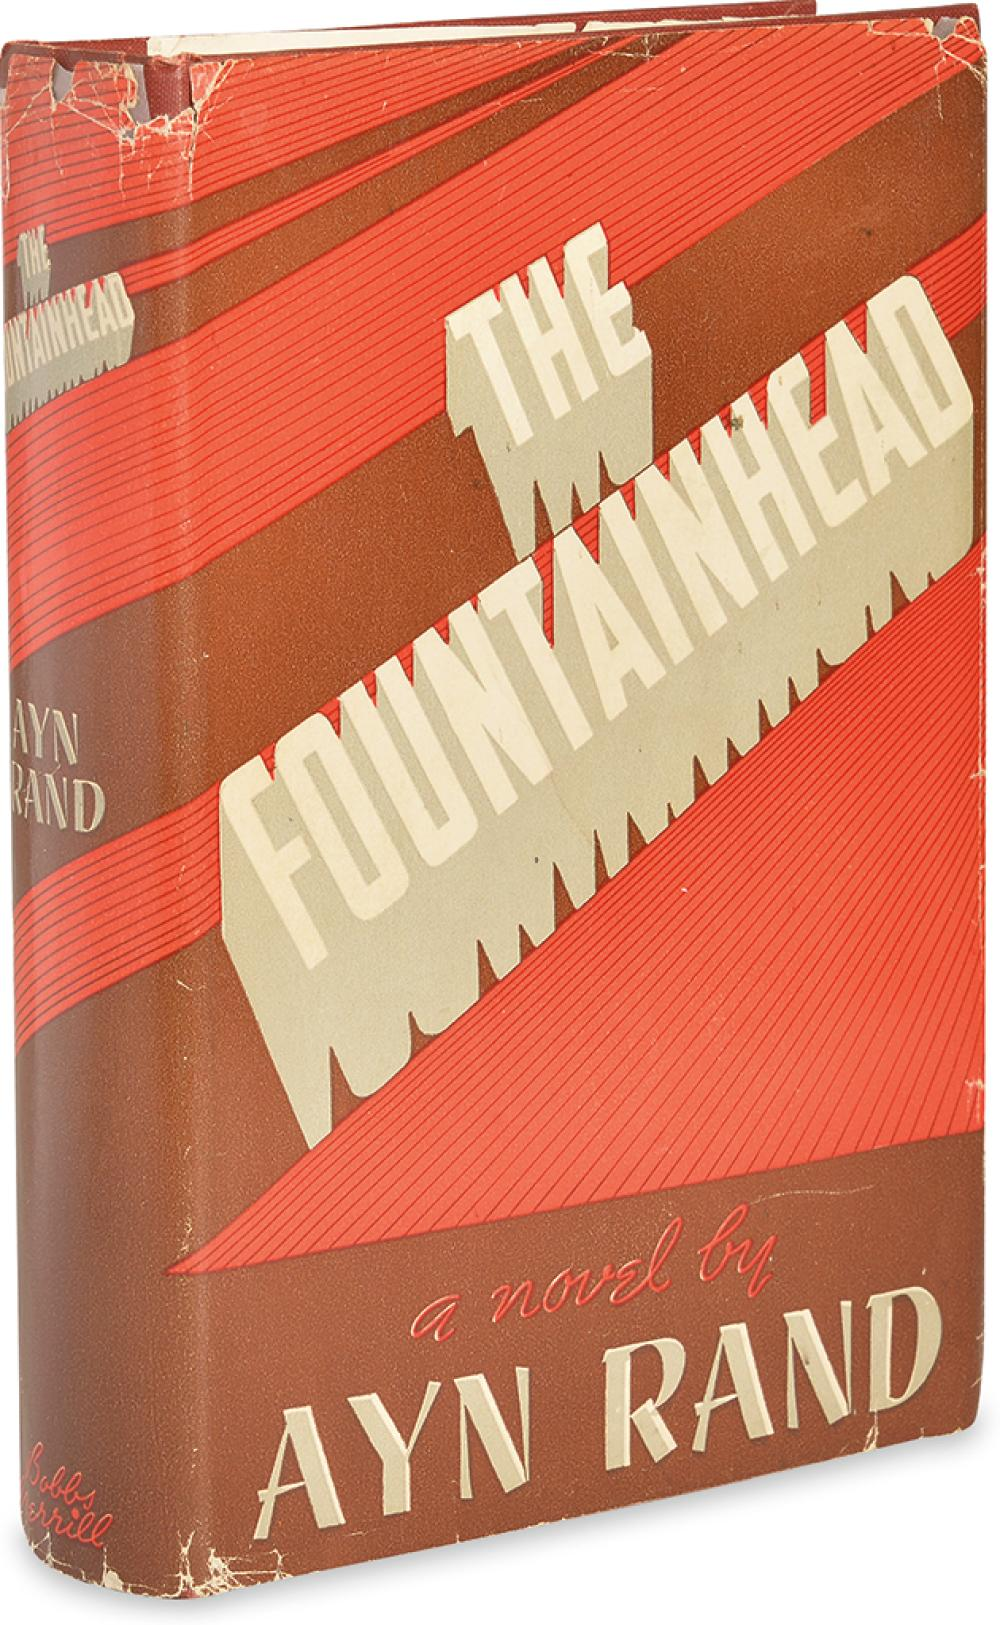 RAND, AYN. The Fountainhead.